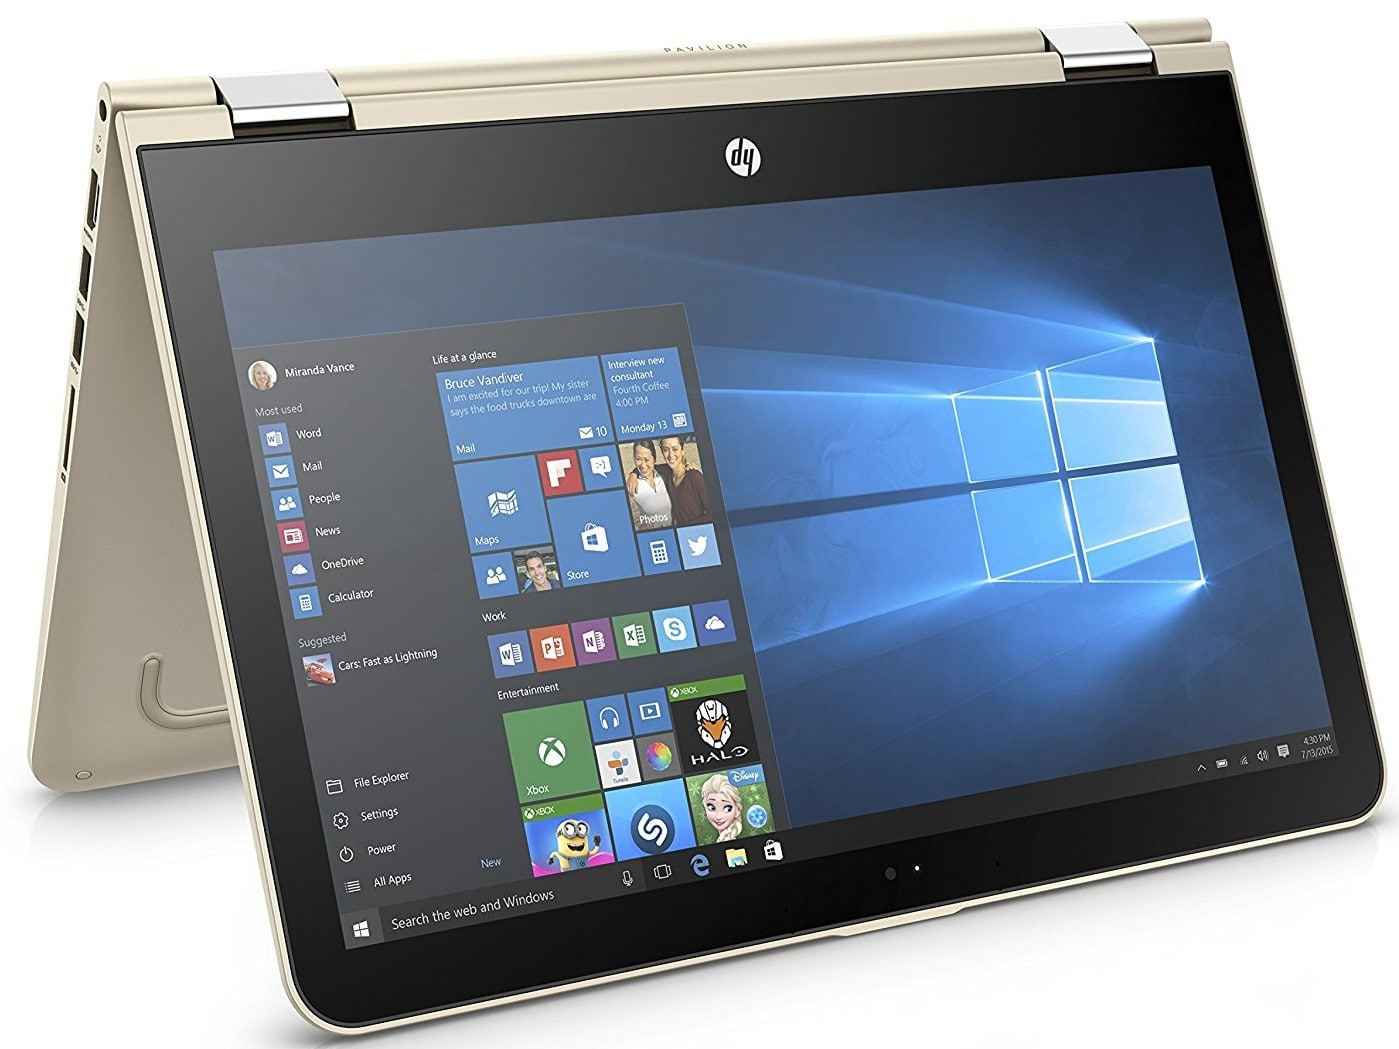 HP Pavilion x360 best laptop under 600 pounds UK